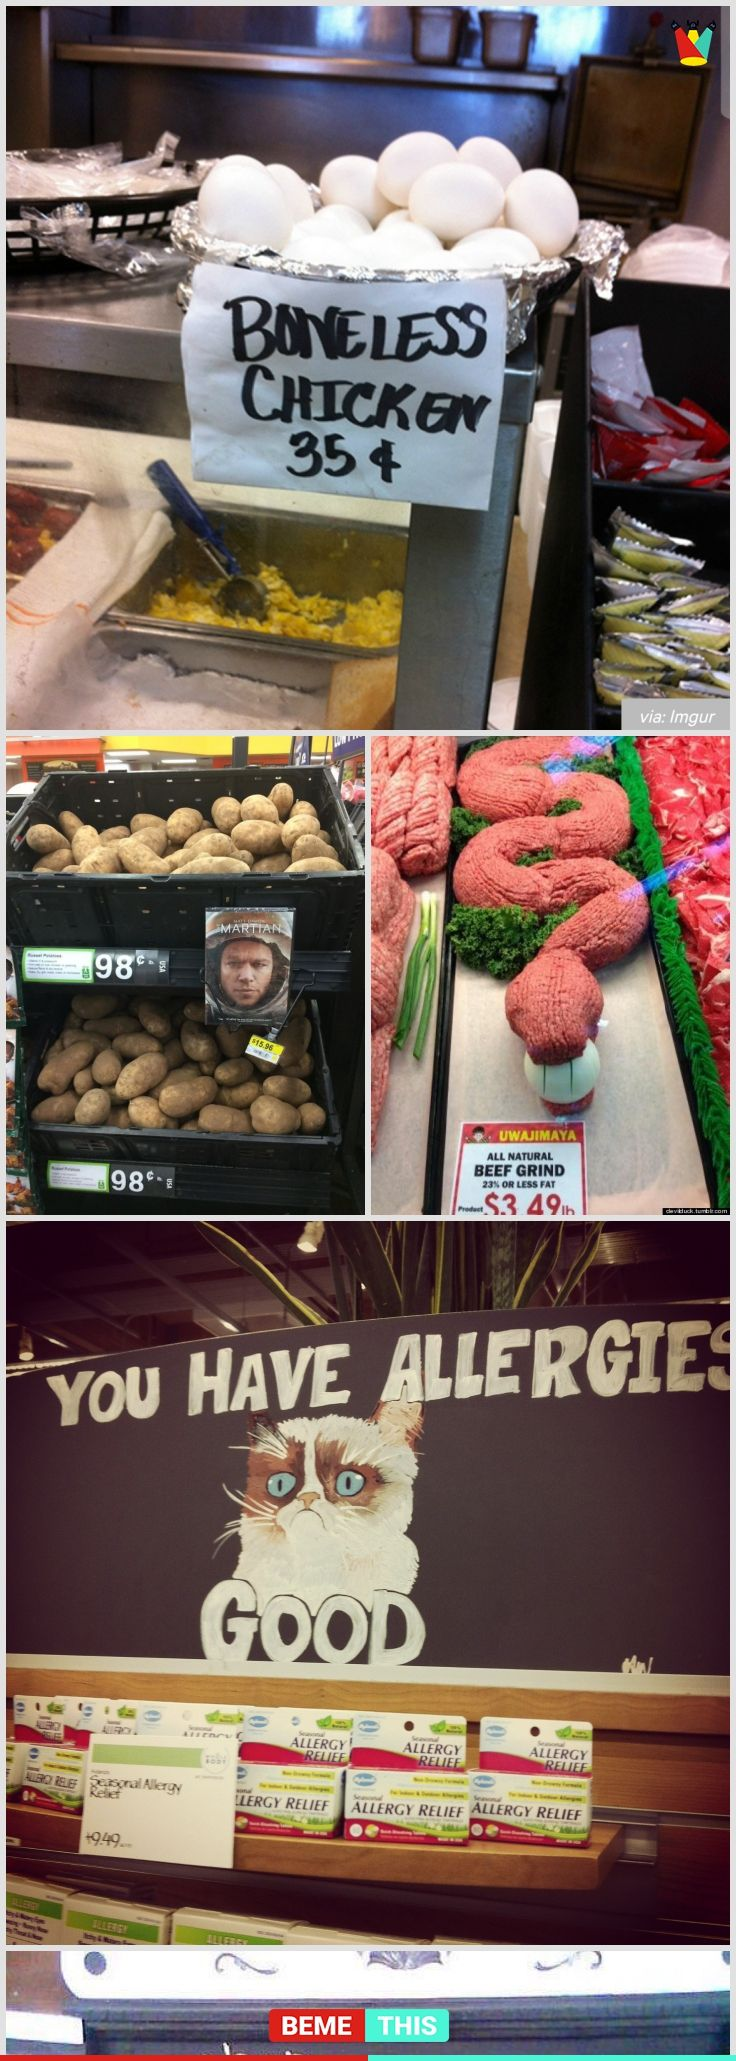 10+ of the Most Funniest Grocery Store Signs Written By Most Creative Souls #funnypictures #grocery #signs #creativity